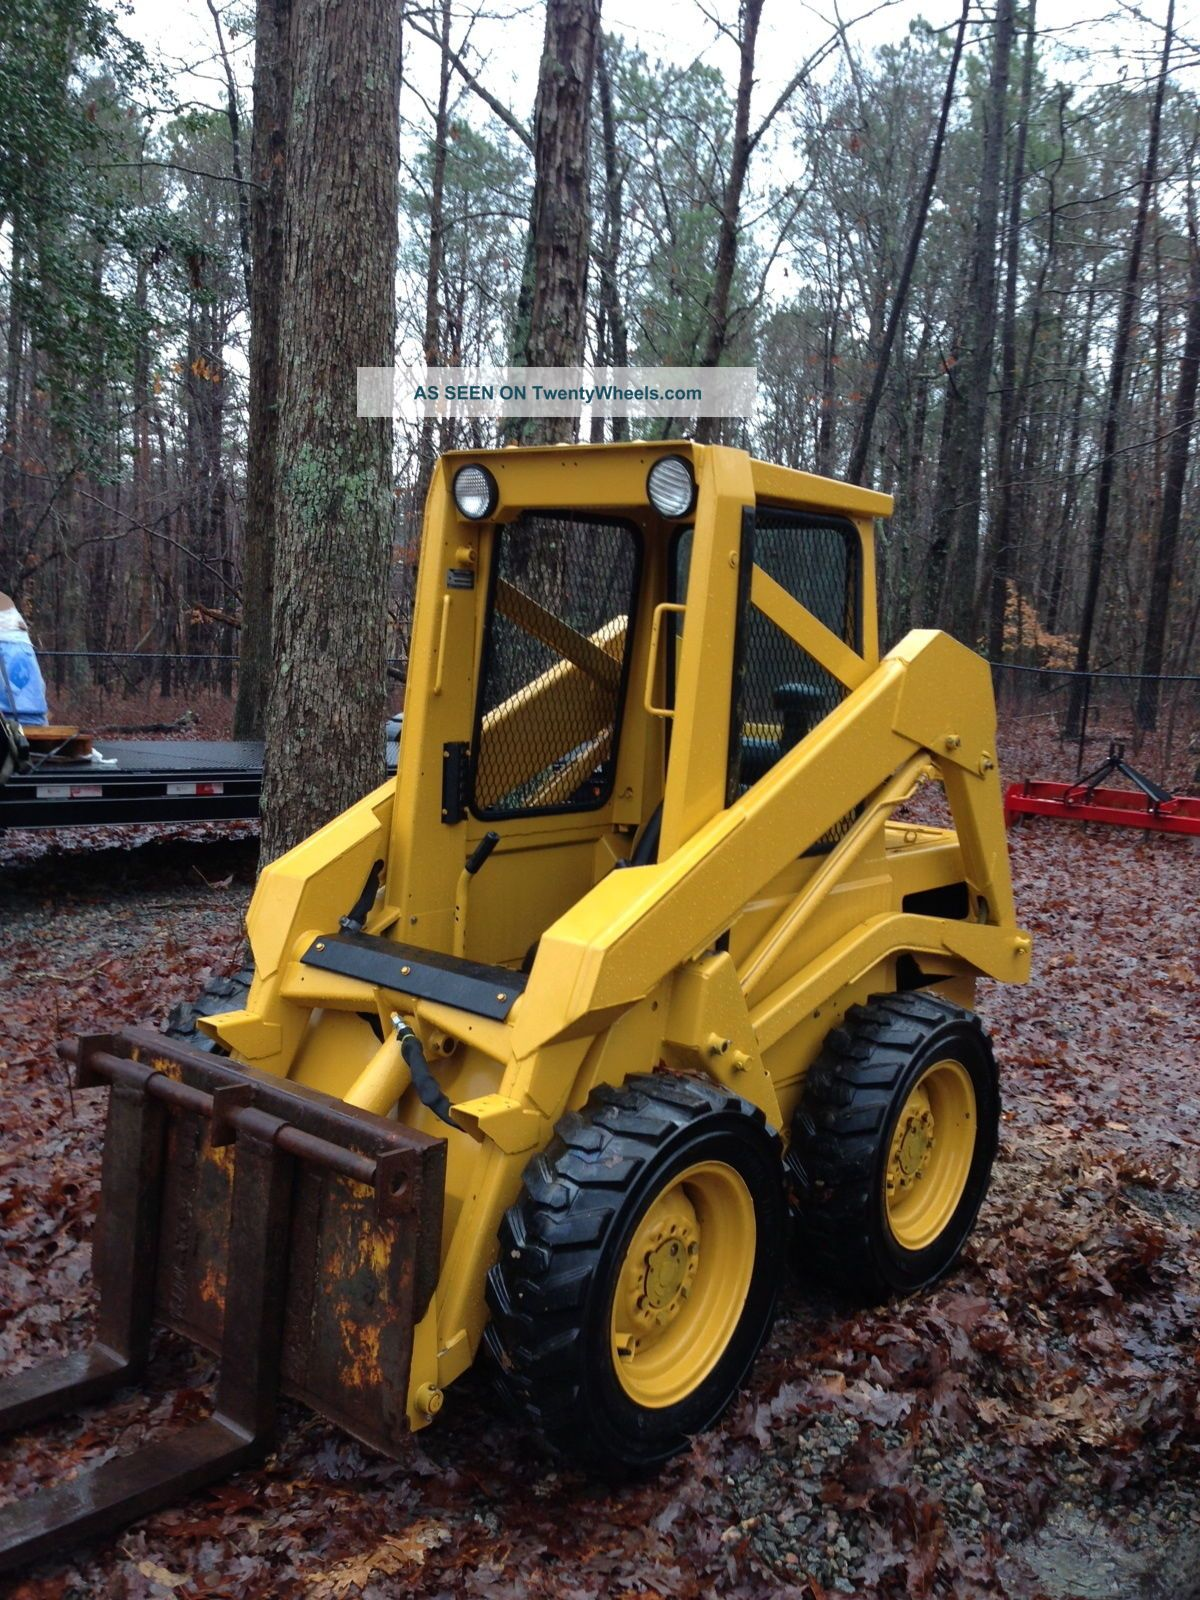 Gd655 as well 16499 John deere 575 skid steer loader moreover  additionally Watch moreover Truck Transfer Trailers. on side dump trailers